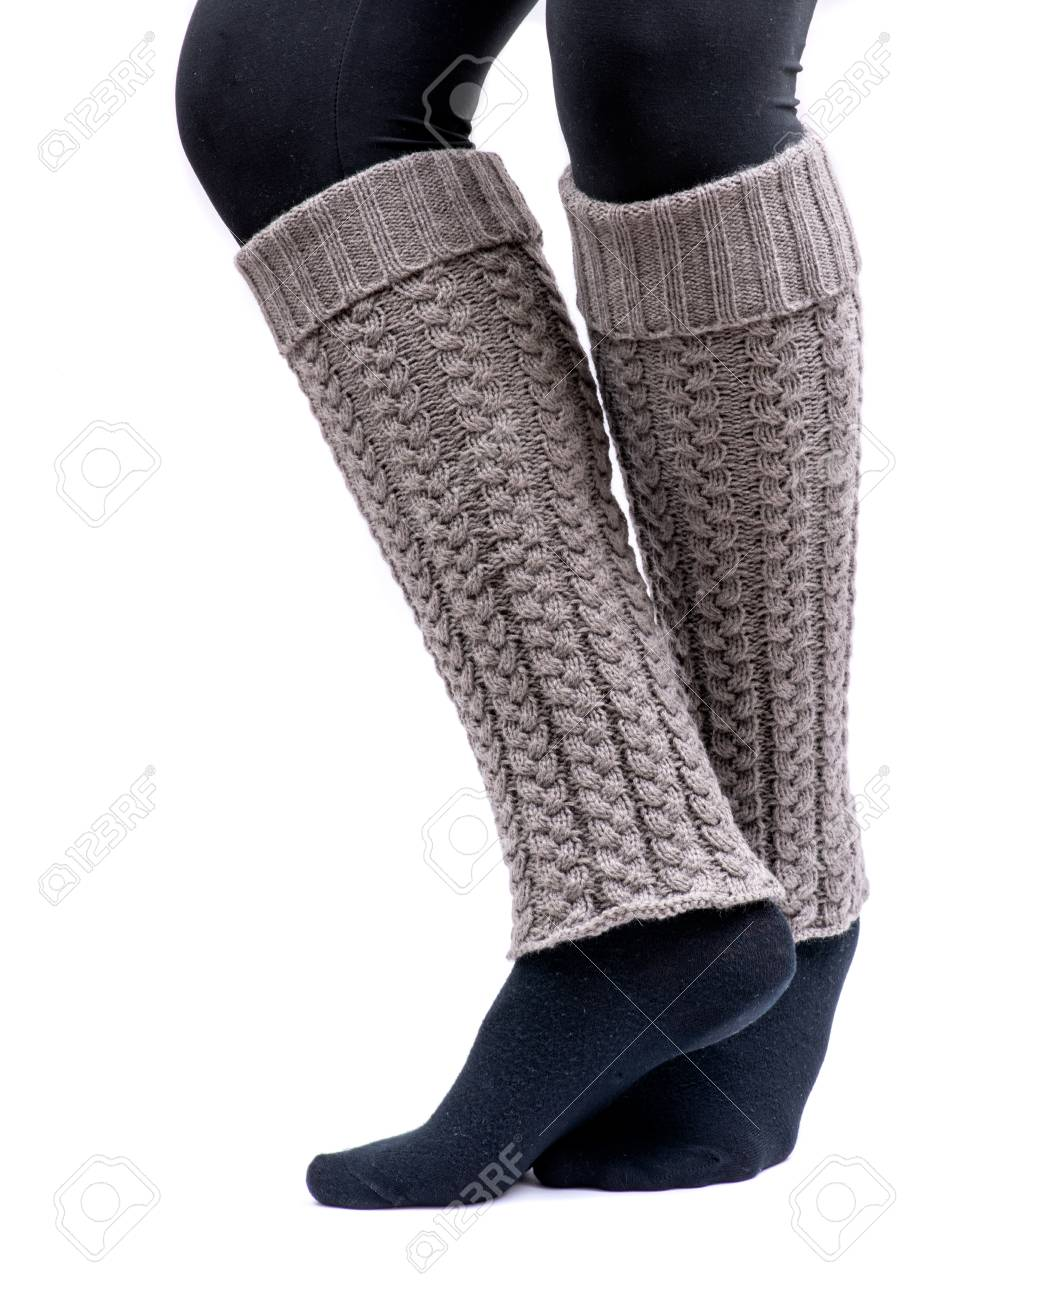 Wear to what with white leg warmers